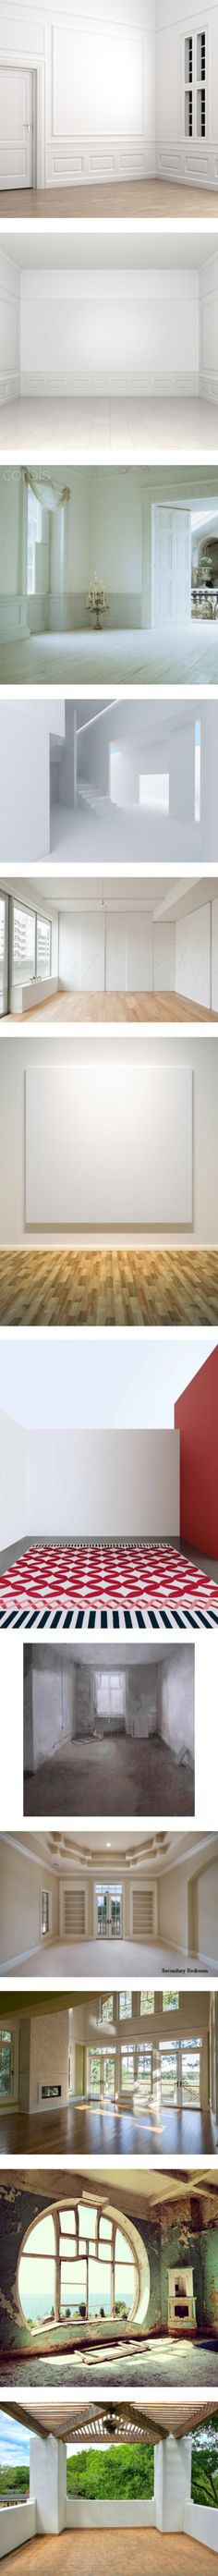 Empty rooms (100) by troff on Polyvore featuring rooms, backgrounds, empty rooms, interiors, home, interior, home decor, frames, empty room and zen home decor